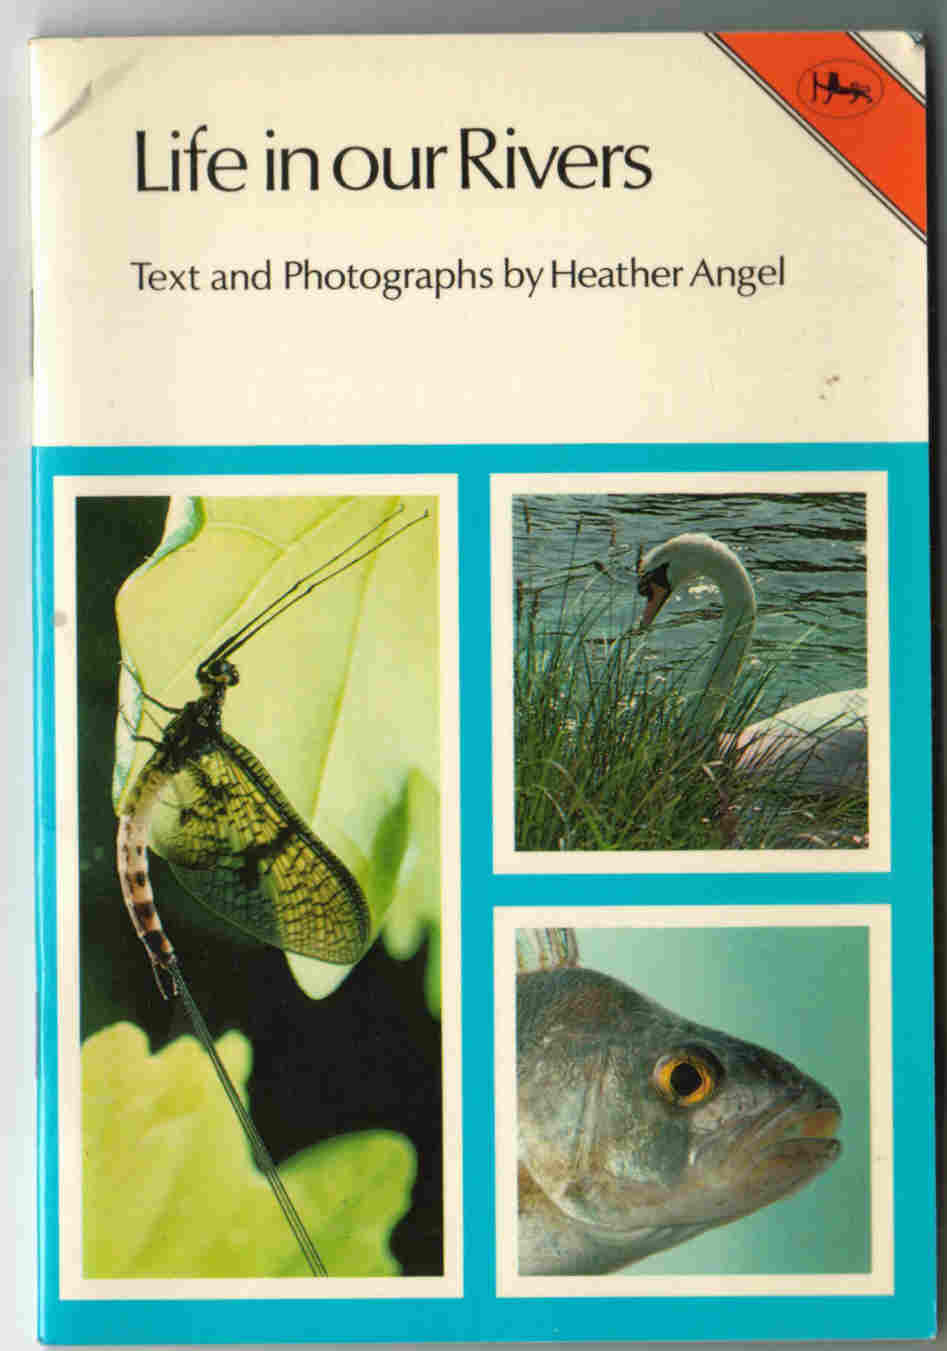 LIFE IN OUR RIVERS By Heather Angel in the Jarrold Nature Series